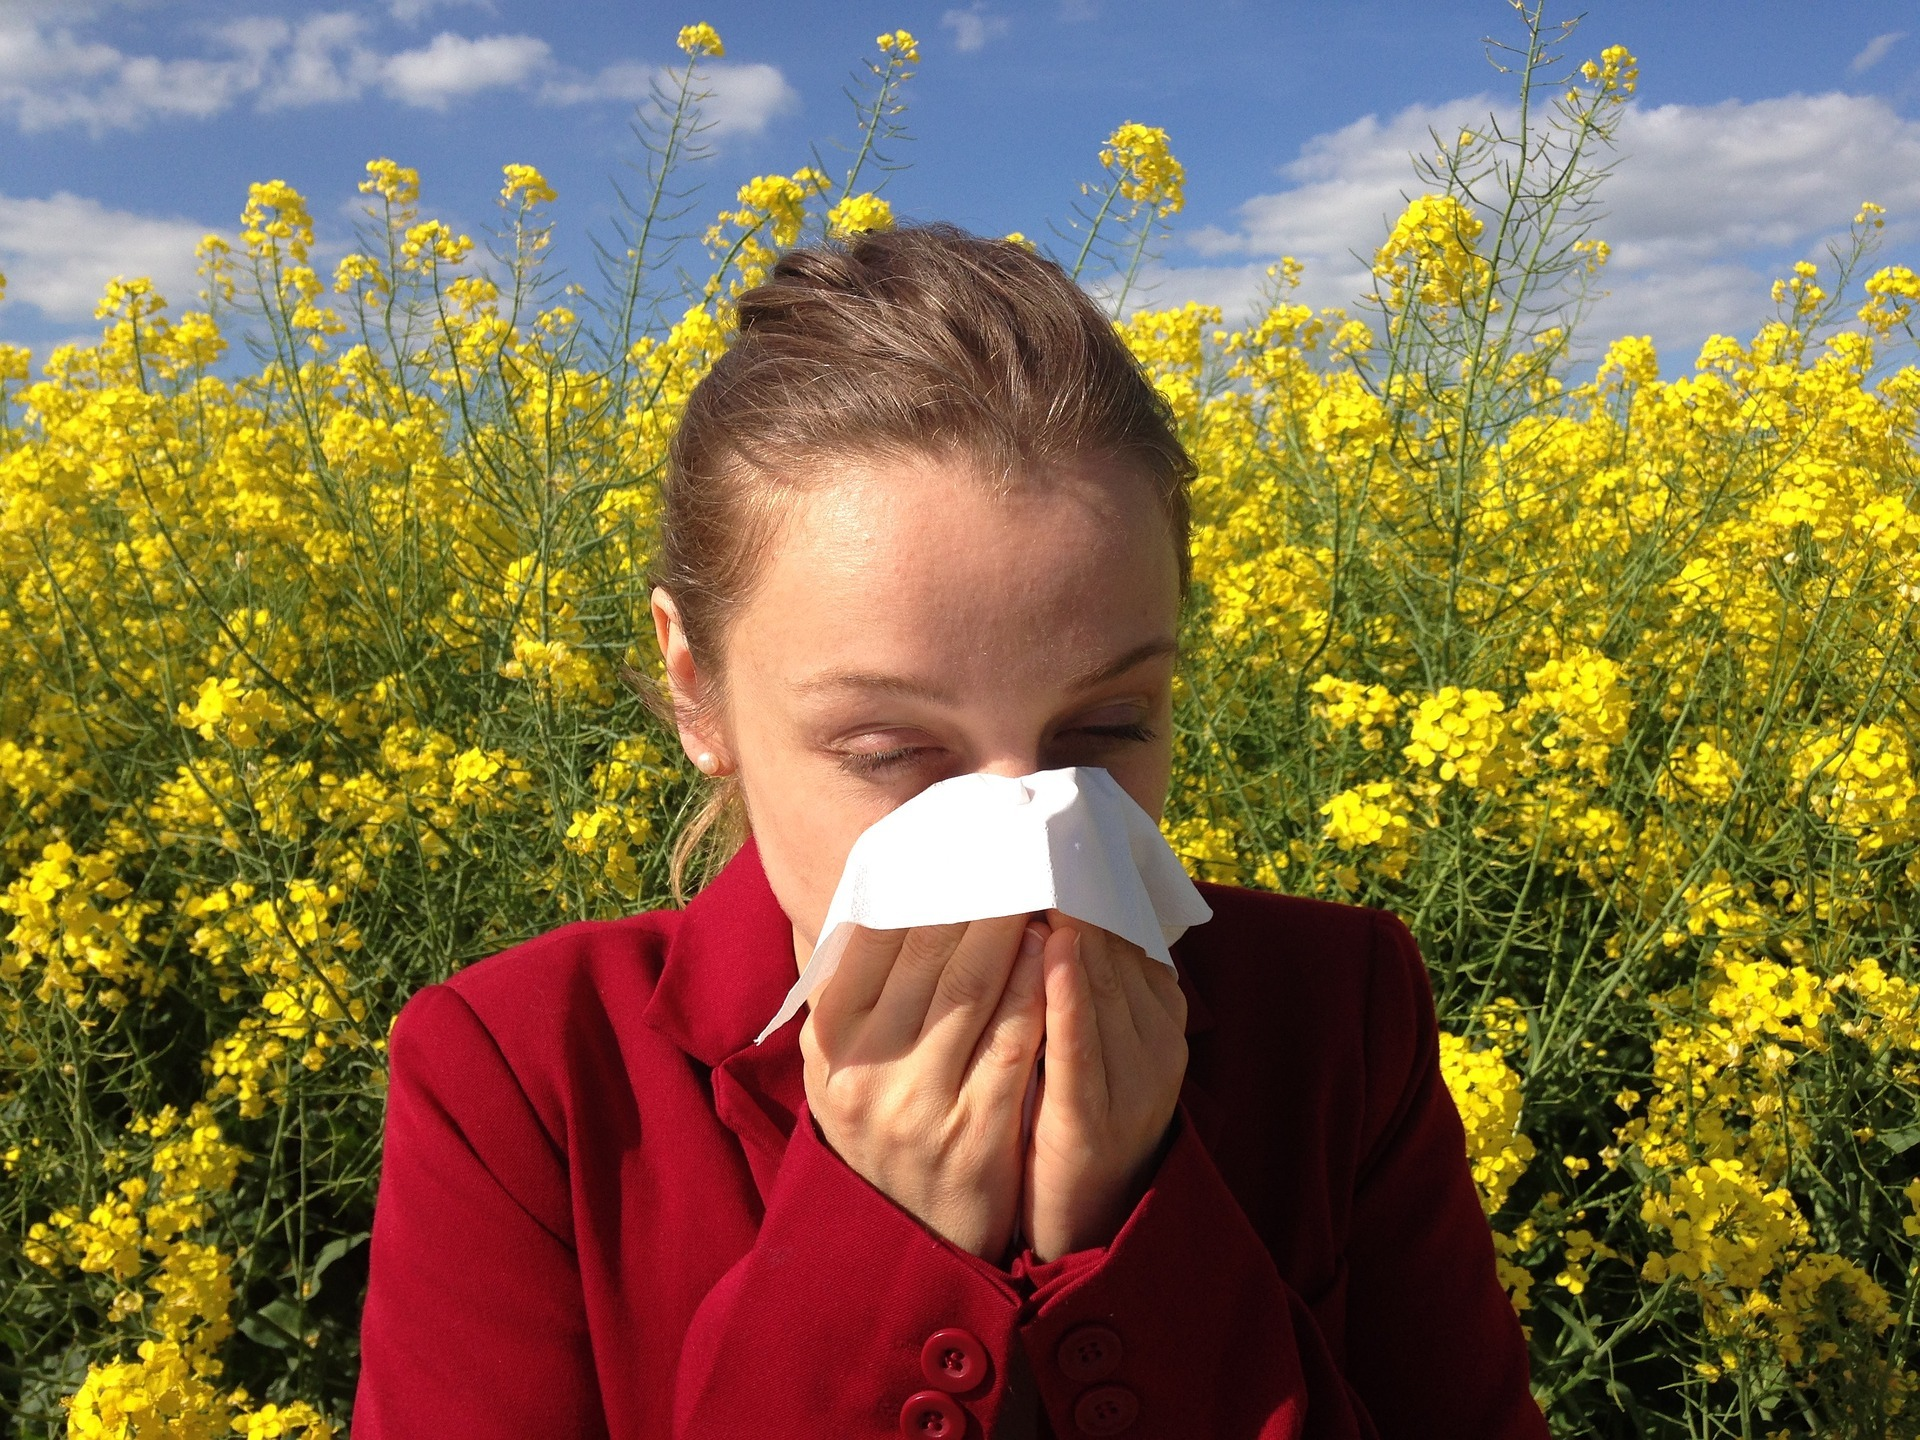 Allergies or COVID-19? Know Your Symptoms